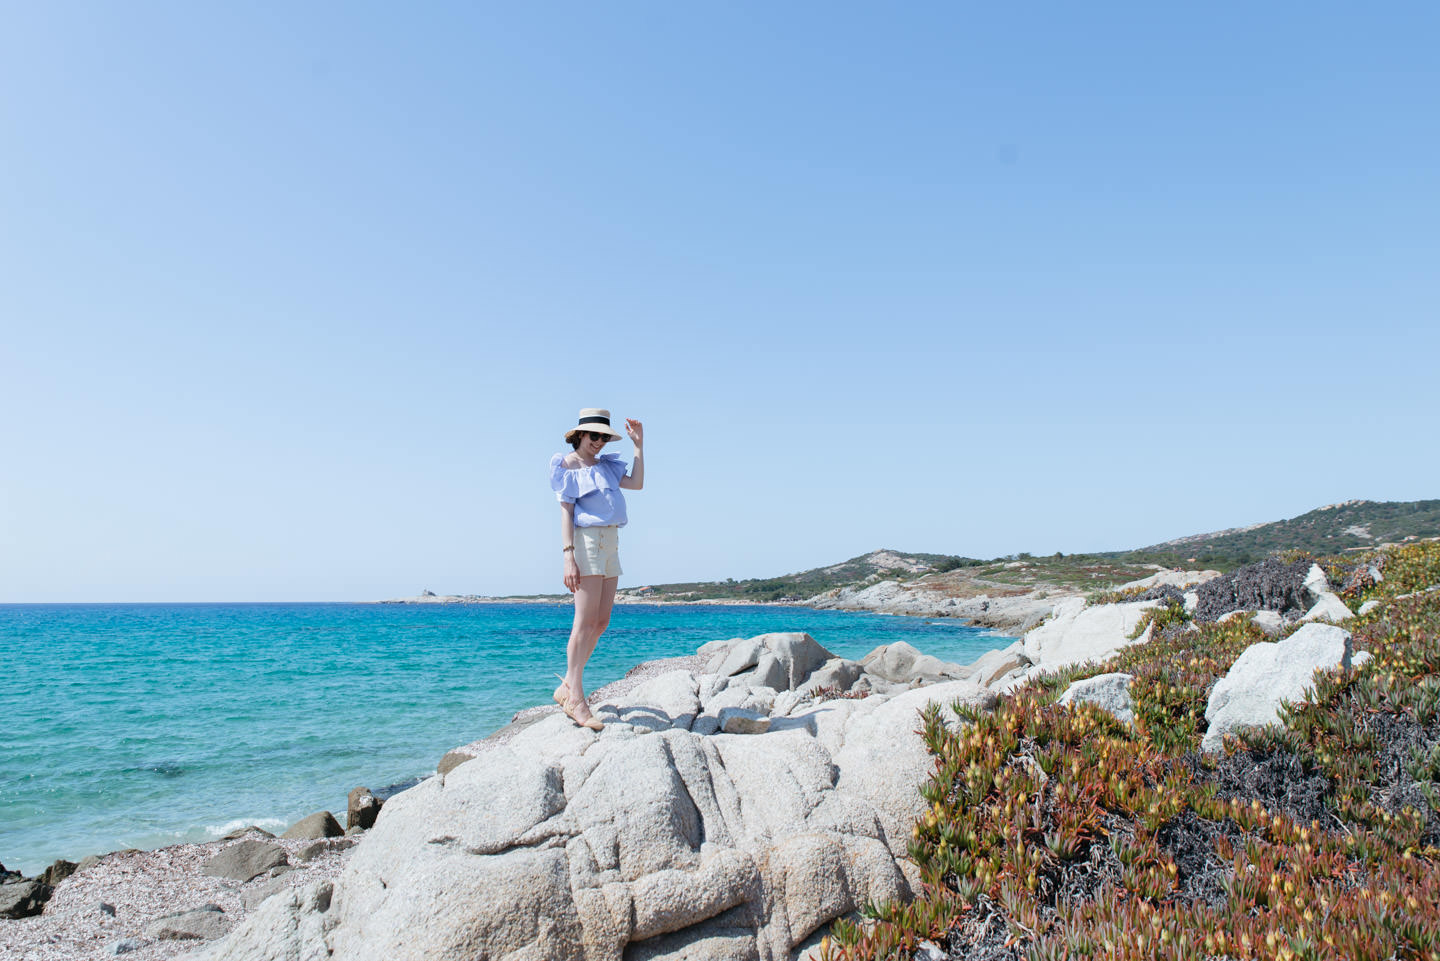 Blog-Mode-And-The-City-Lifestyle-Calvi-on-The-Rocks-avec-Chanel-23